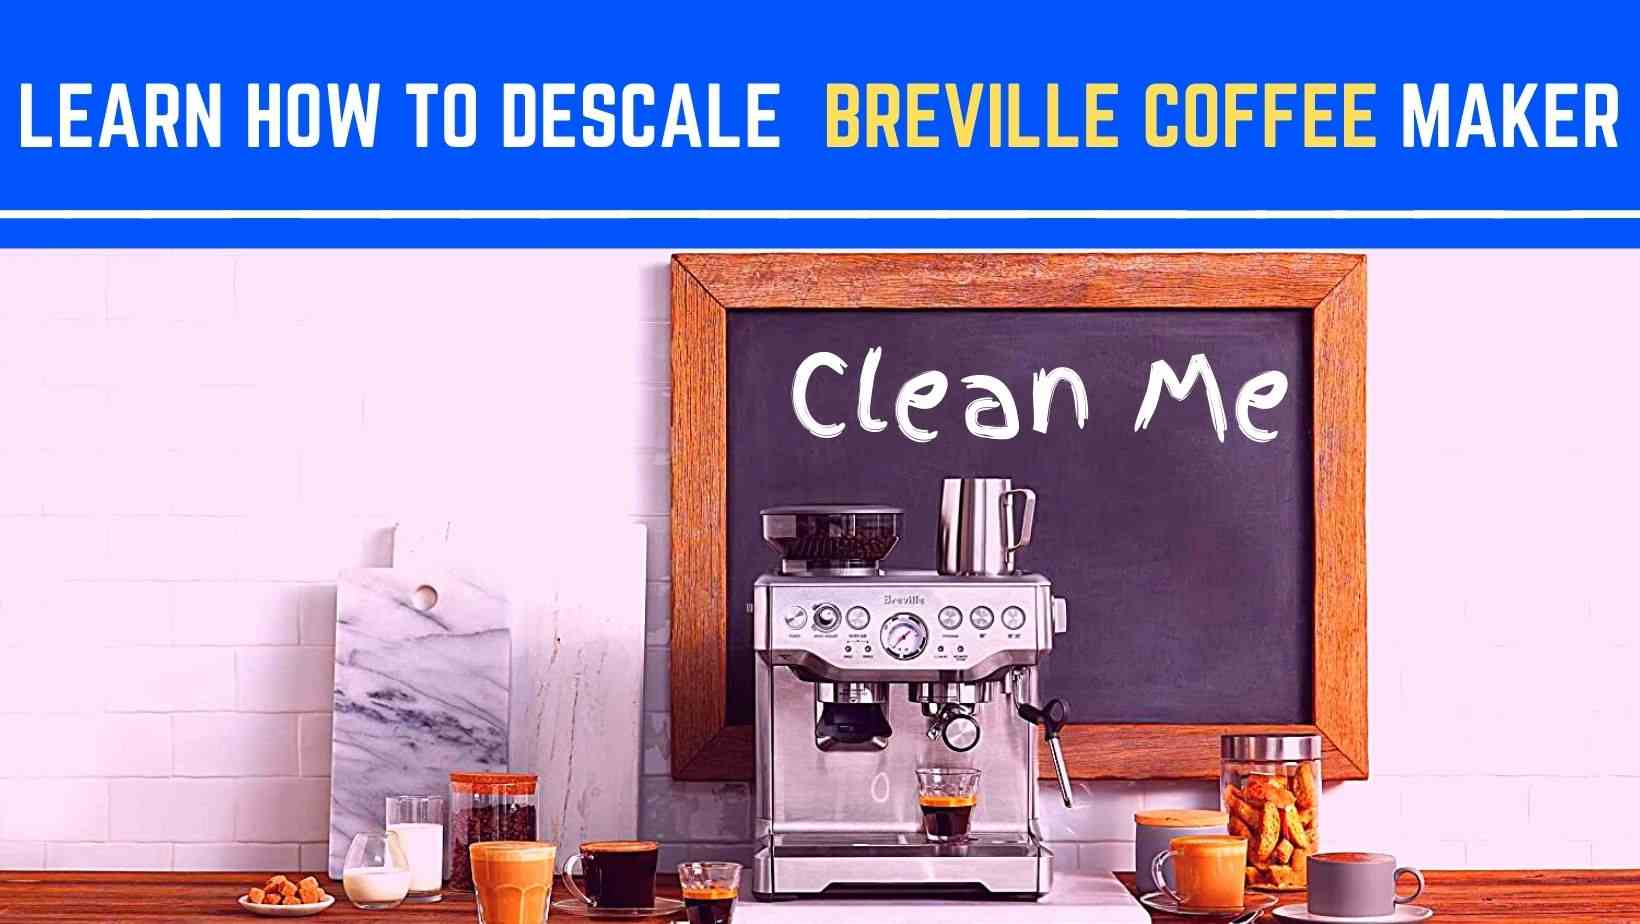 Learn How to Descale Breville Coffee Maker